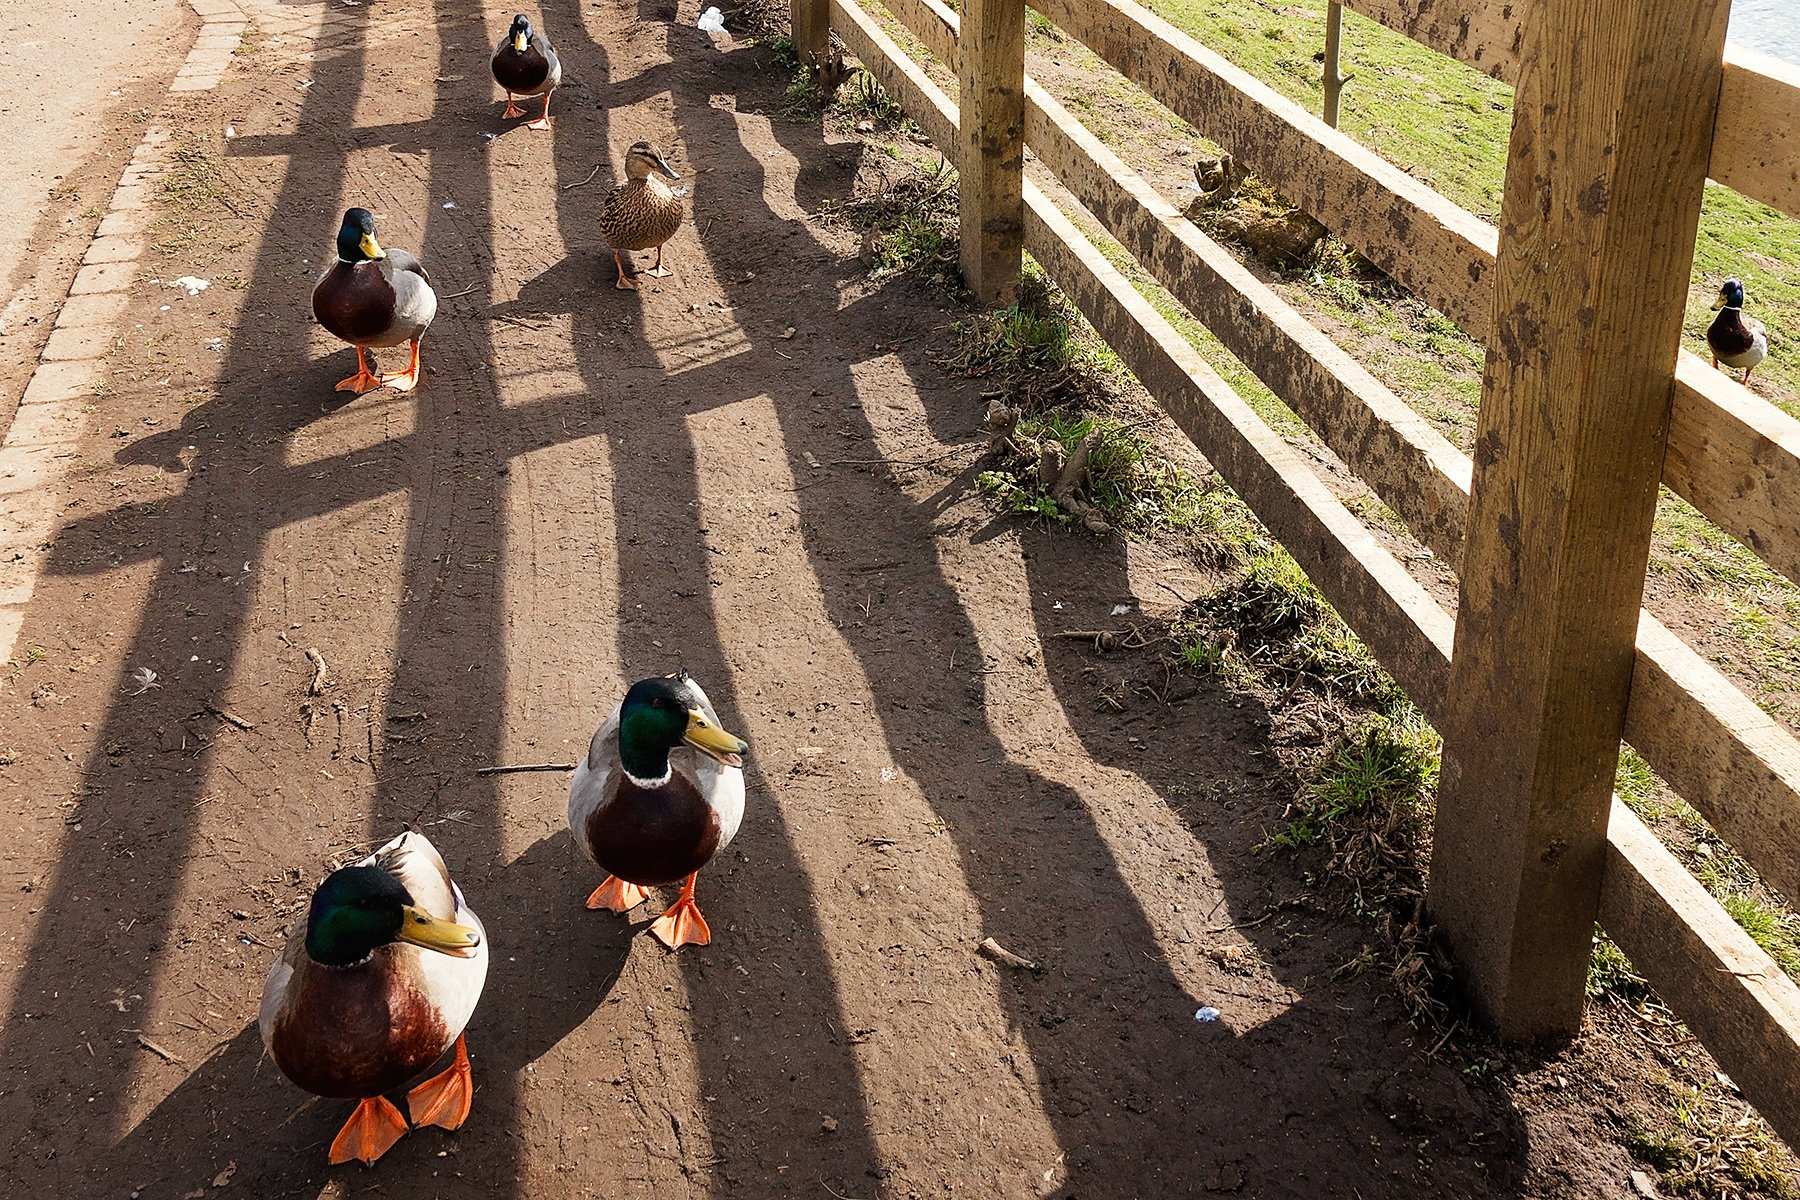 Ducks on the road at More Hall Reservoir.